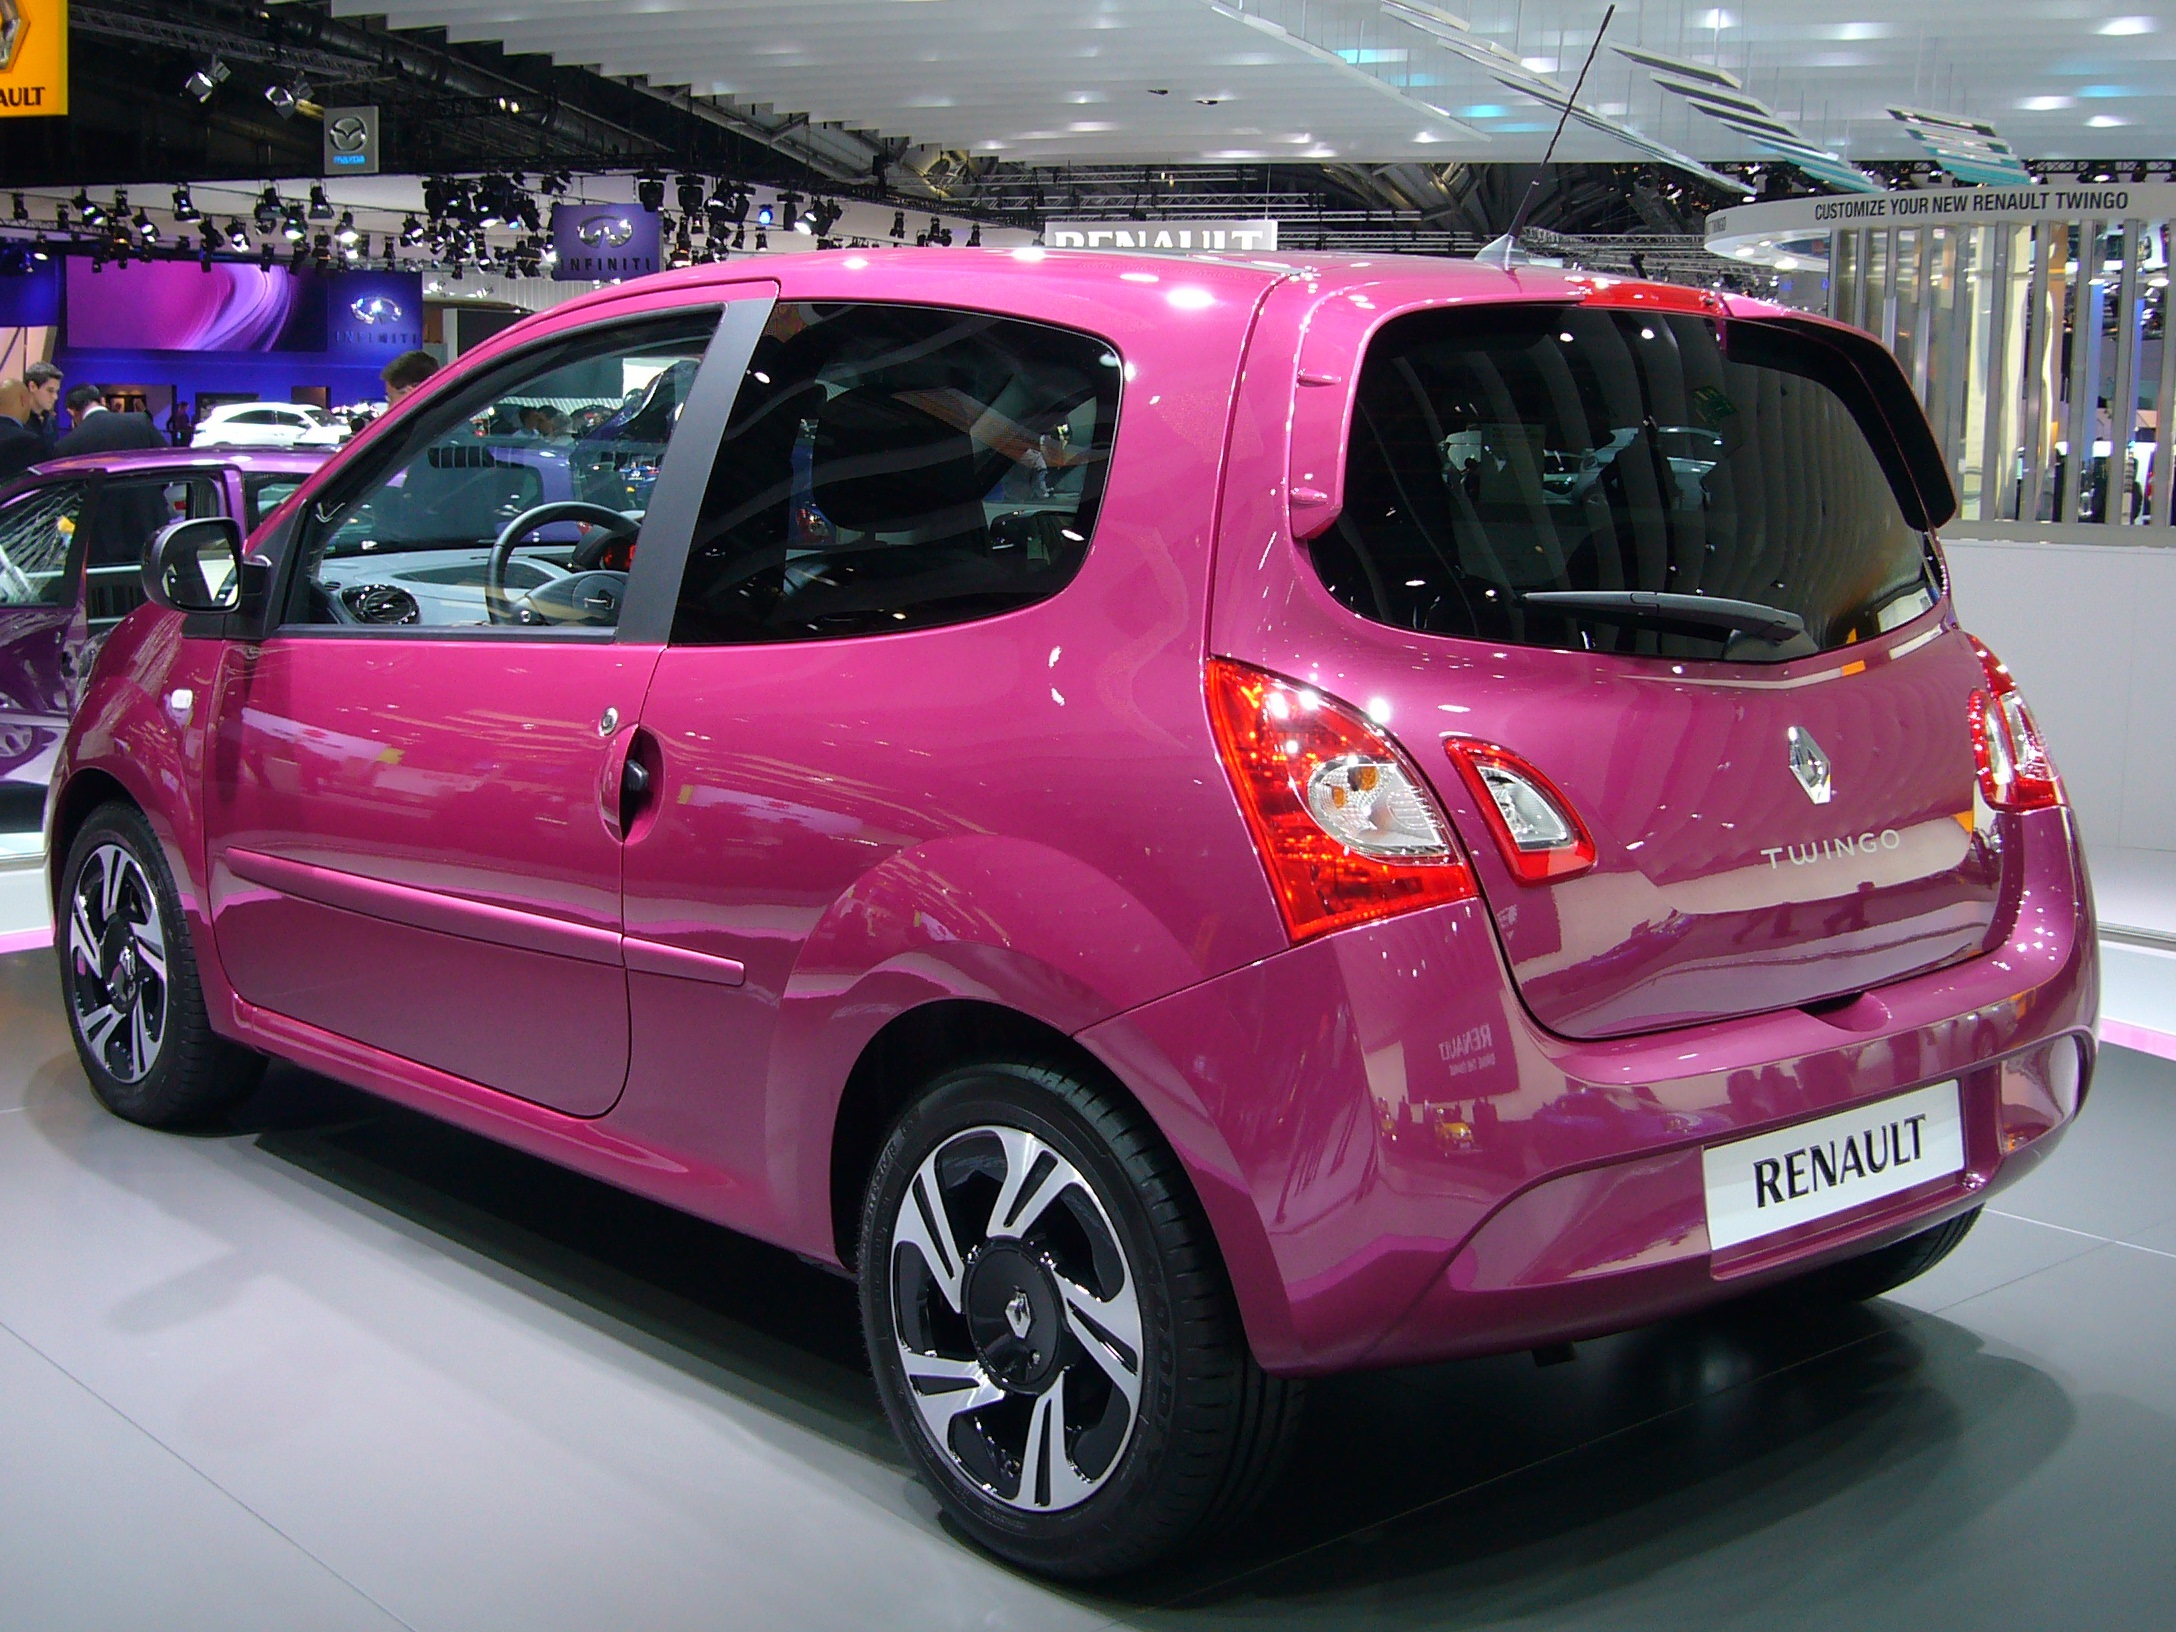 file renault twingo phase ii rear quarter jpg wikimedia commons. Black Bedroom Furniture Sets. Home Design Ideas